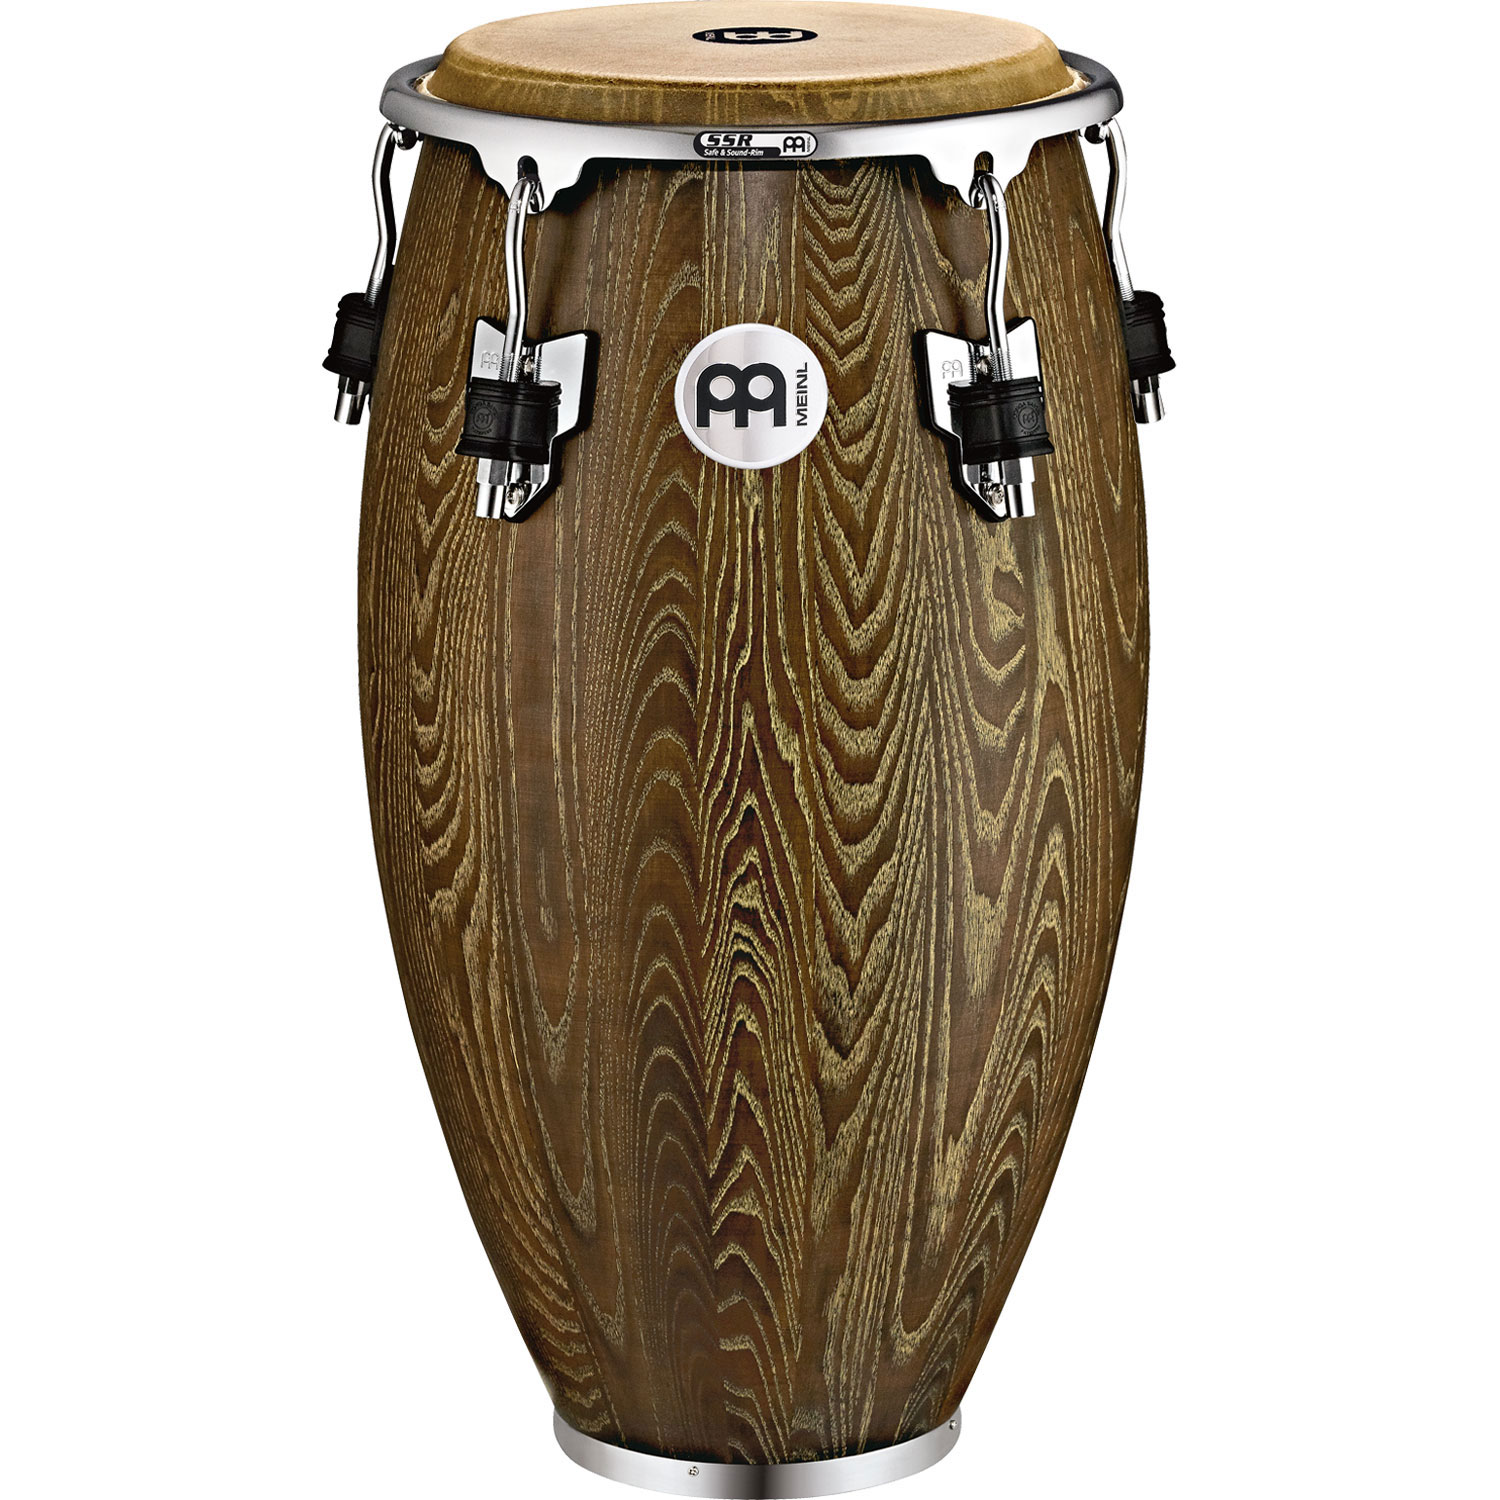 "Meinl 11.75"" Woodcraft Series Conga in Vintage Brown"